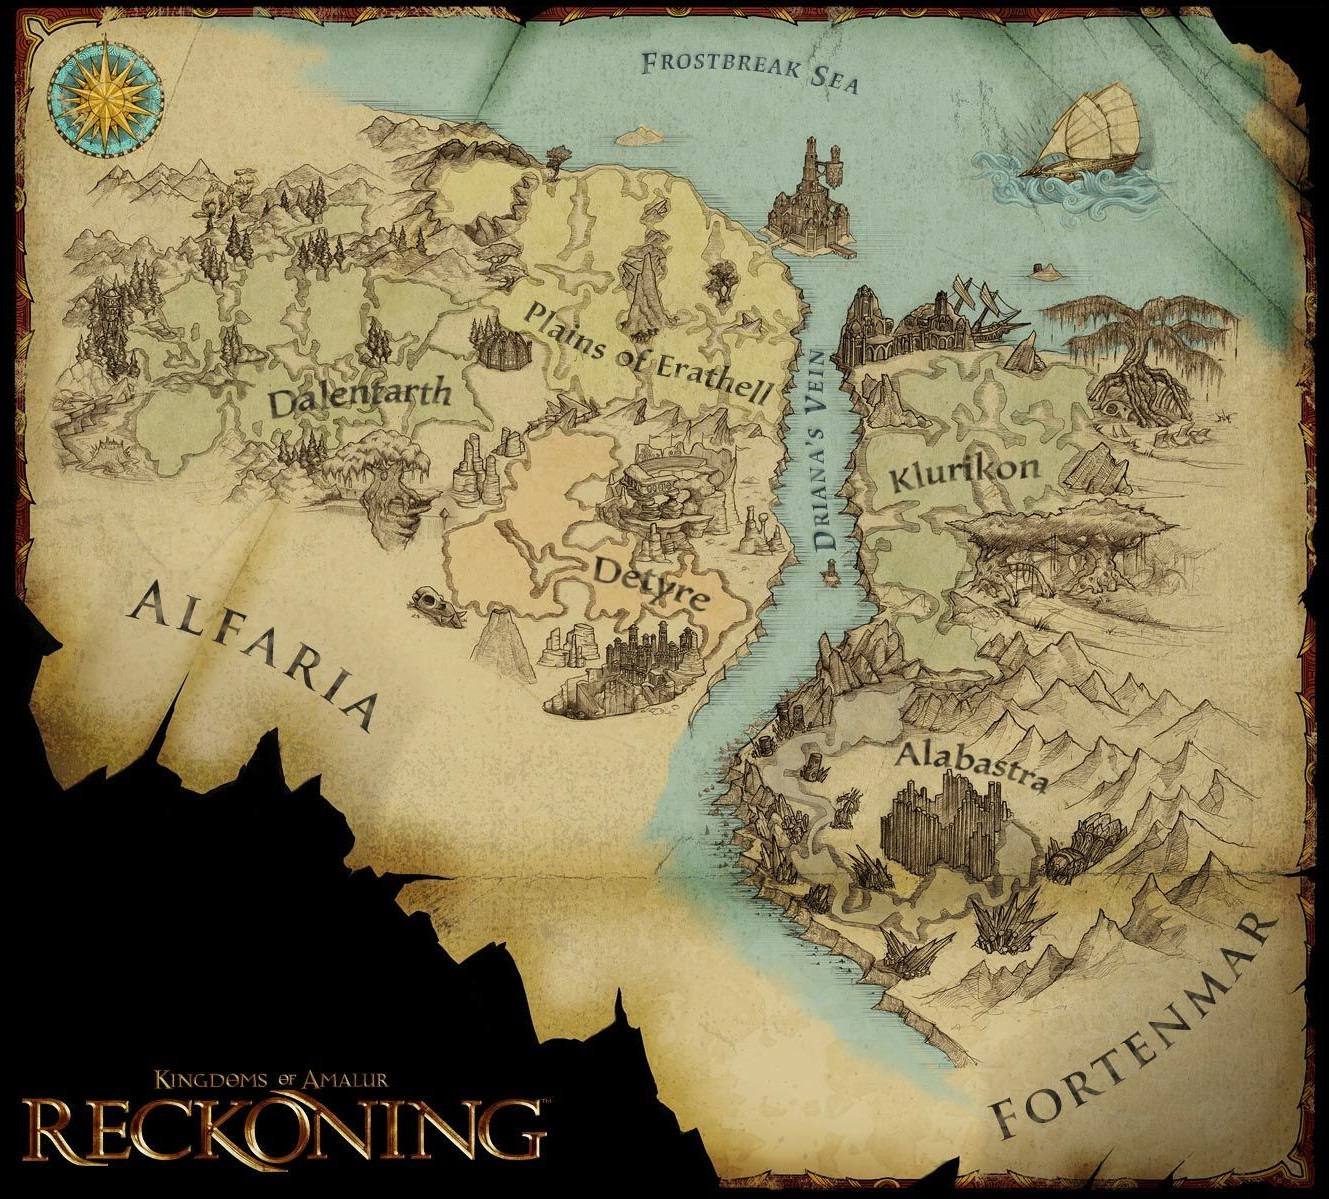 The Faelands | Amalur Wiki | FANDOM powered by Wikia on bioshock world map, kingdom hearts final mix world map, medal of honor warfighter world map, gears of war world map, portal 2 world map, assassin's creed brotherhood world map, witcher 2 map, call of duty modern warfare 3 world map, koa the reckoning map, sleeping dogs world map, binary domain world map, borderlands world map, dark souls world map, kingdoms of alamur reckoning, koa reckoning world map, house of valor on map, red dead redemption world map, command and conquer red alert 3 world map, reckoning game map,